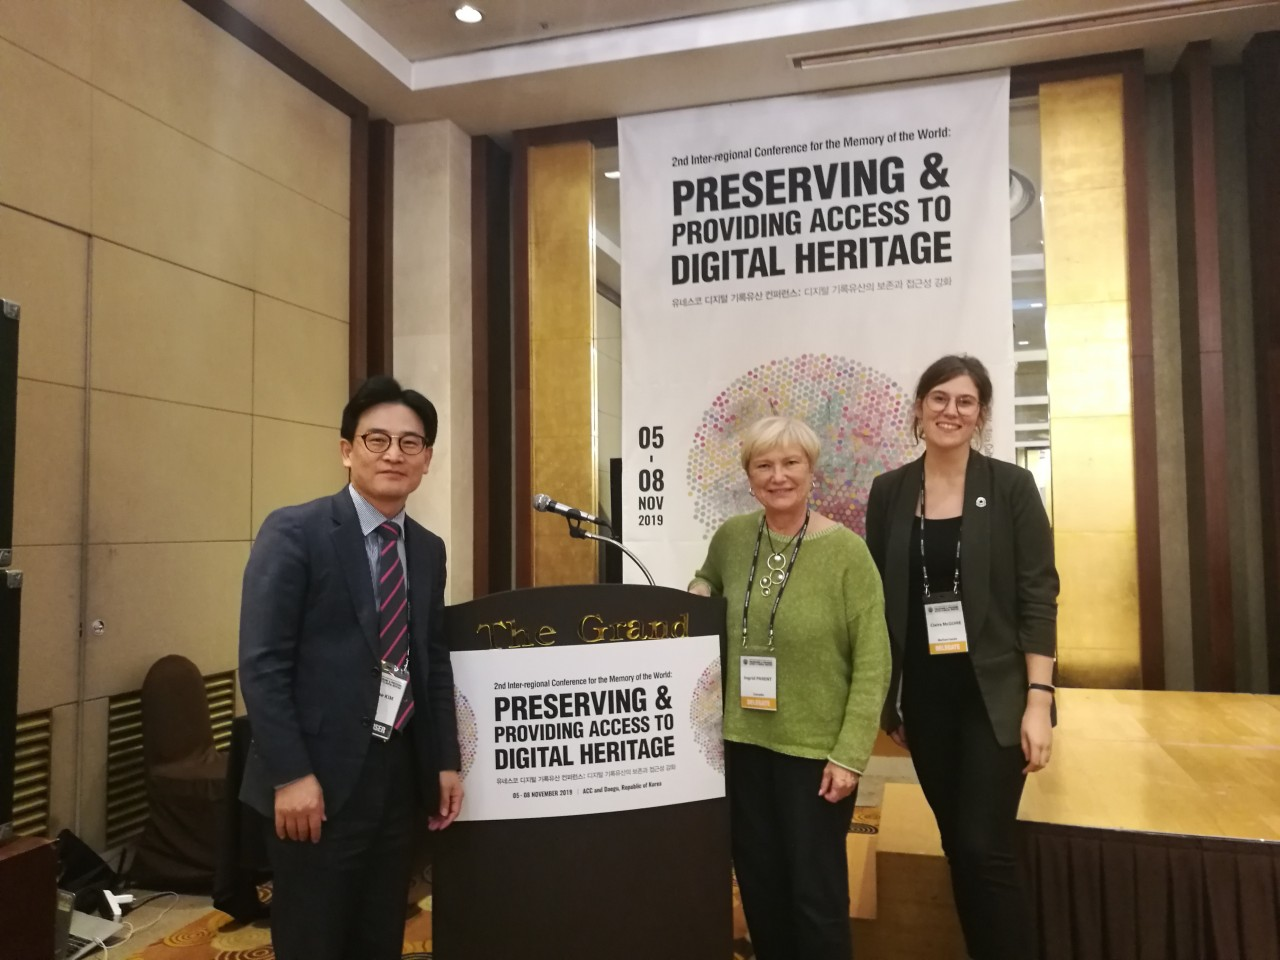 (L to R) Kwibae Kim, chair of Memory of the World Committee for the Asia-Pacific, Ingrid Parent, past IFLA president and UNESCO-PERSIST chair, Claire McGuire, IFLA Policy and Research Officer